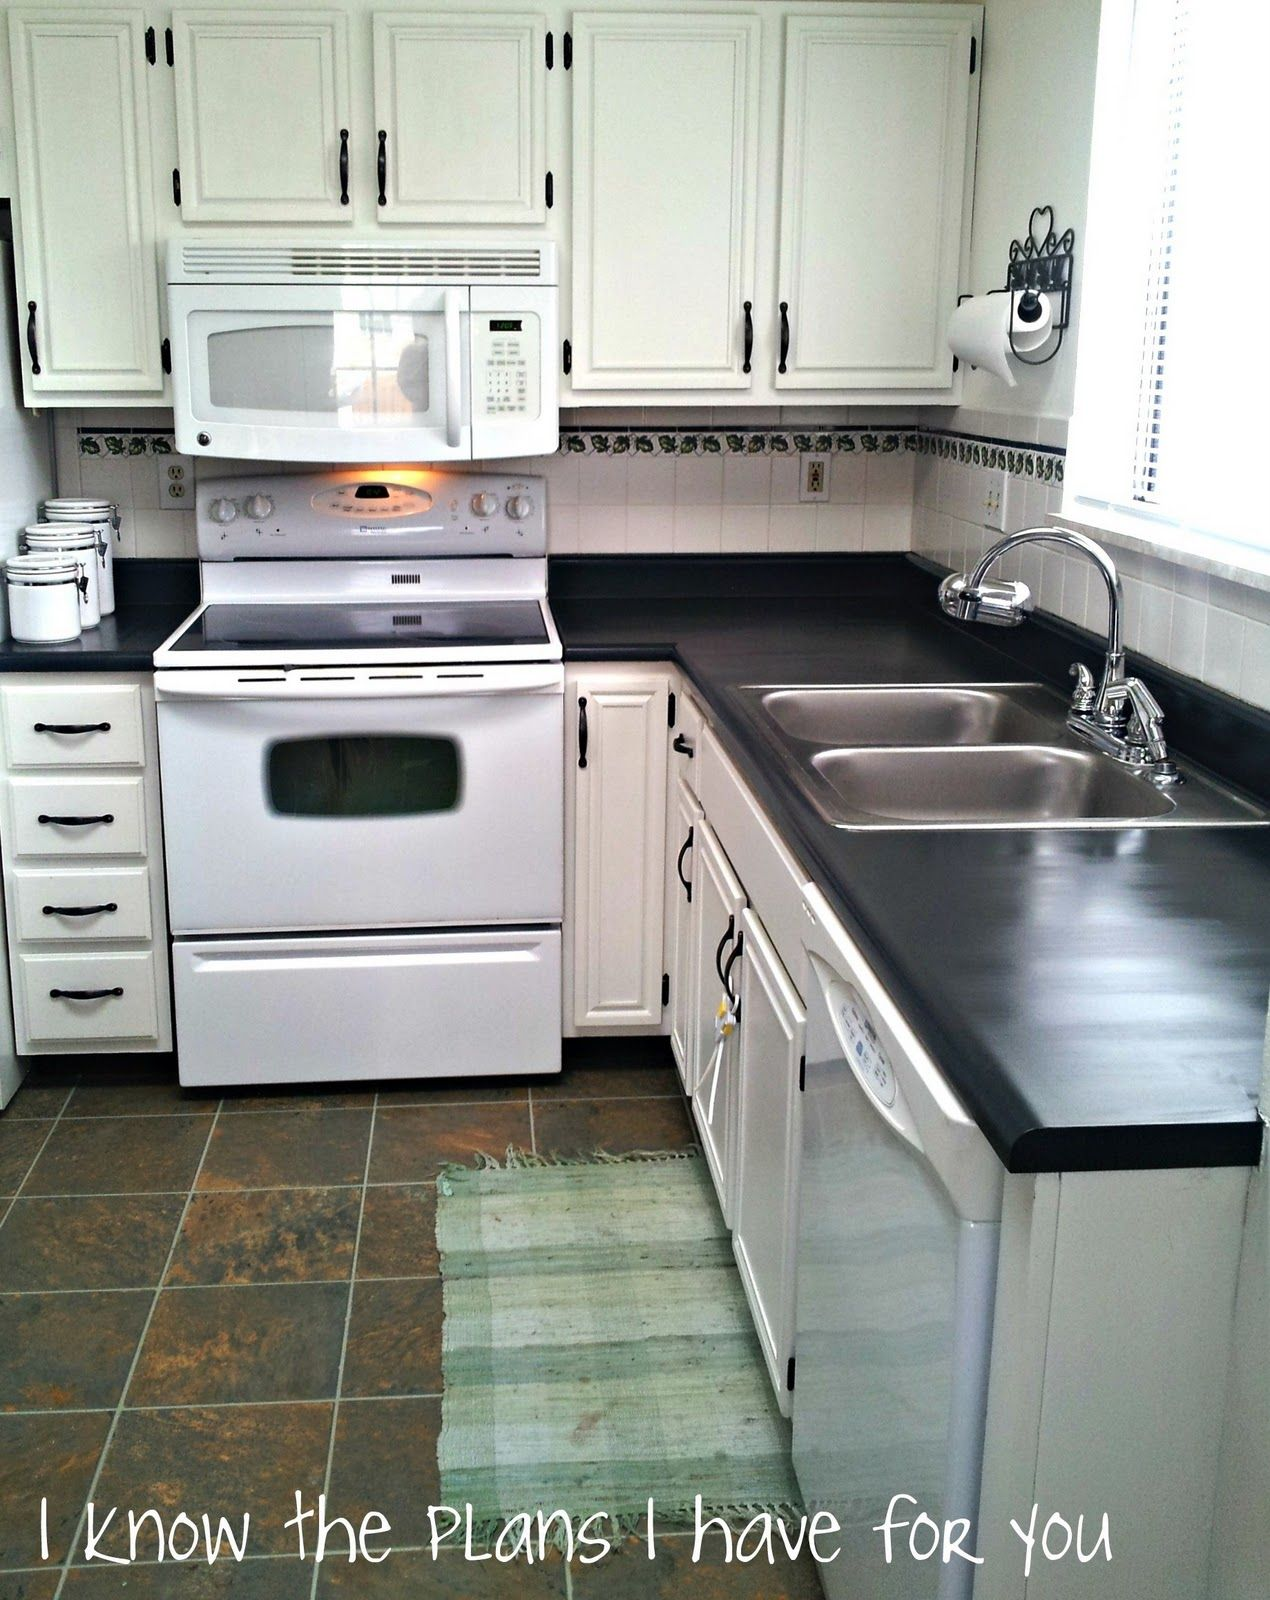 5 Mistakes People Make when Painting Countertops - Painted Furniture Ideas #furnitureredos